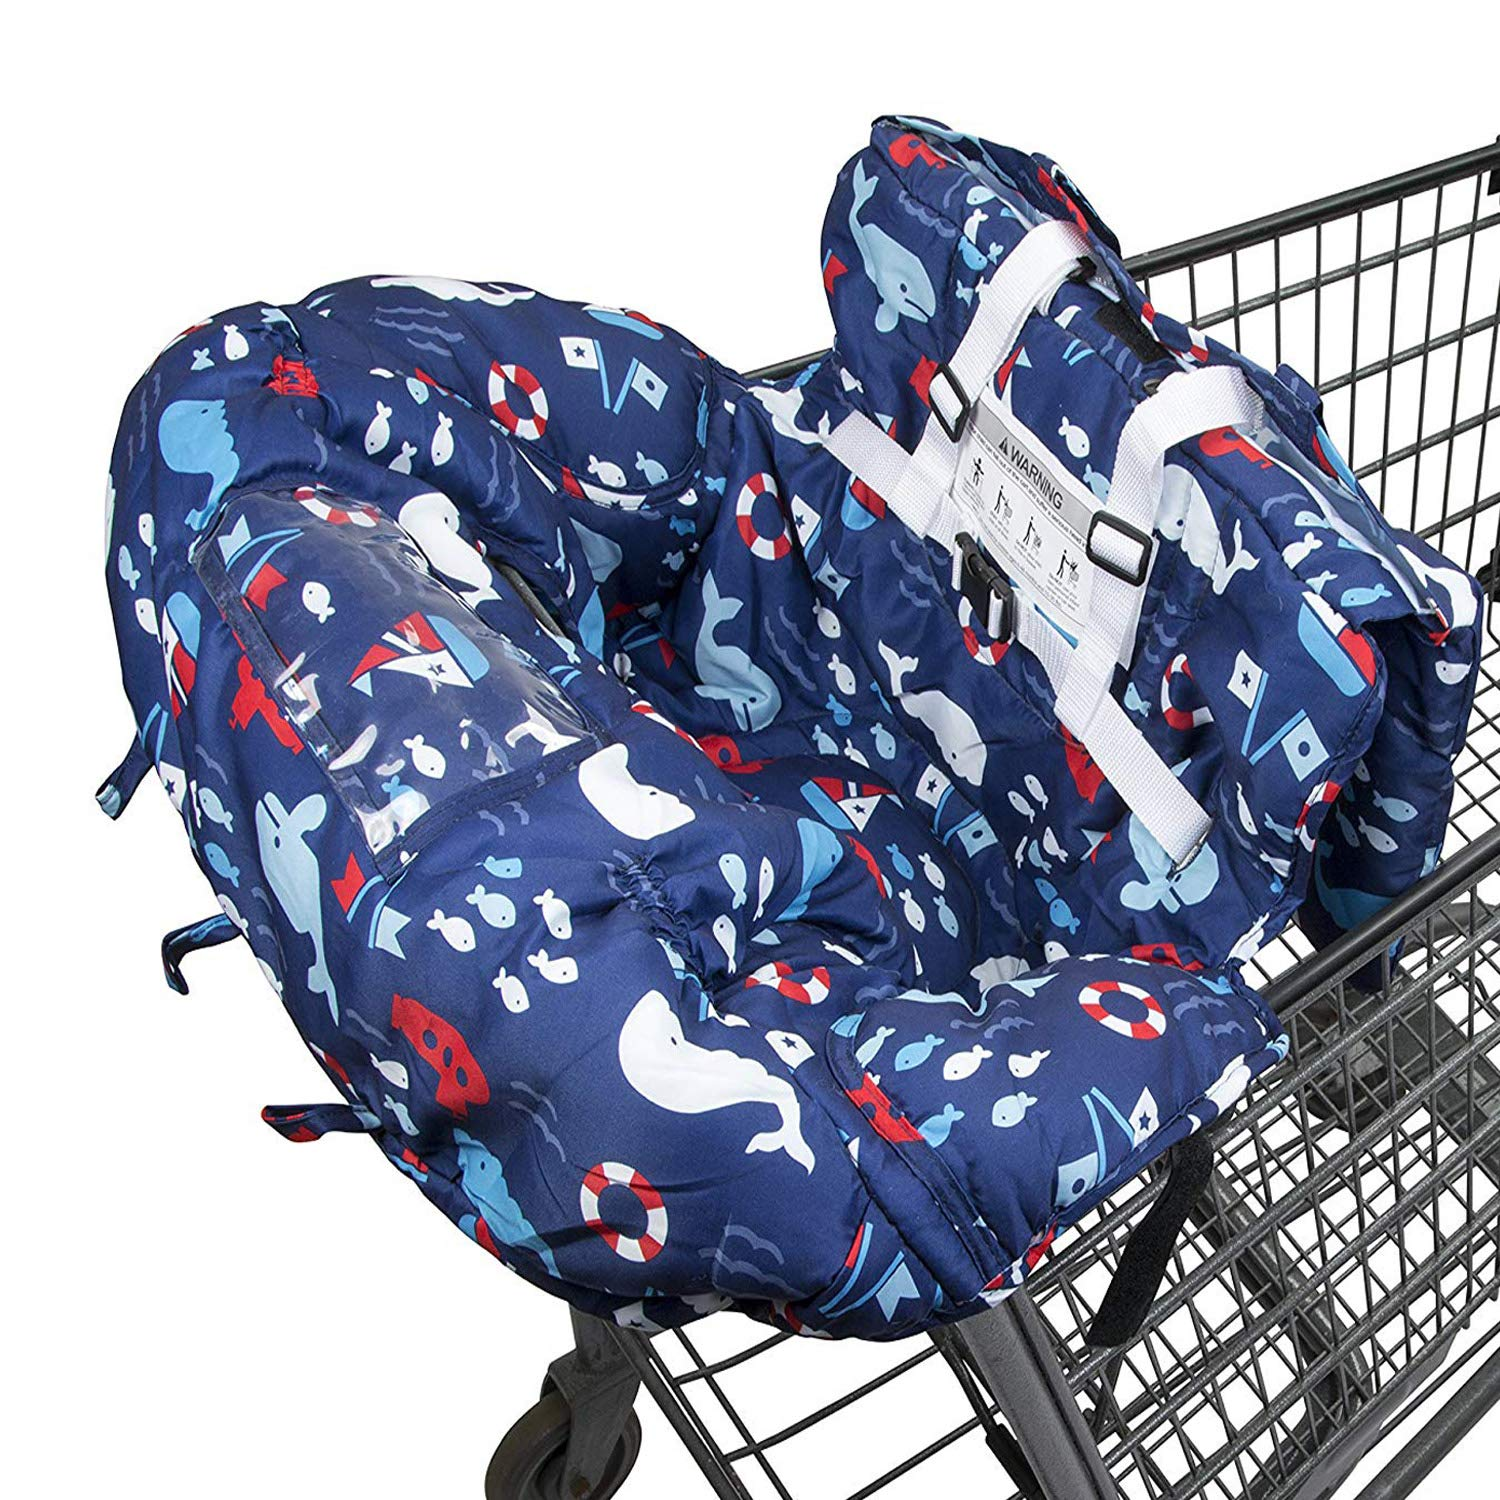 Shopping Cart Cover for Baby- 2-in-1 - Foldable Portable Seat with Bag for Infant to Toddler - Compatible with Grocery Cart Seat and High Chair - Blue Whale